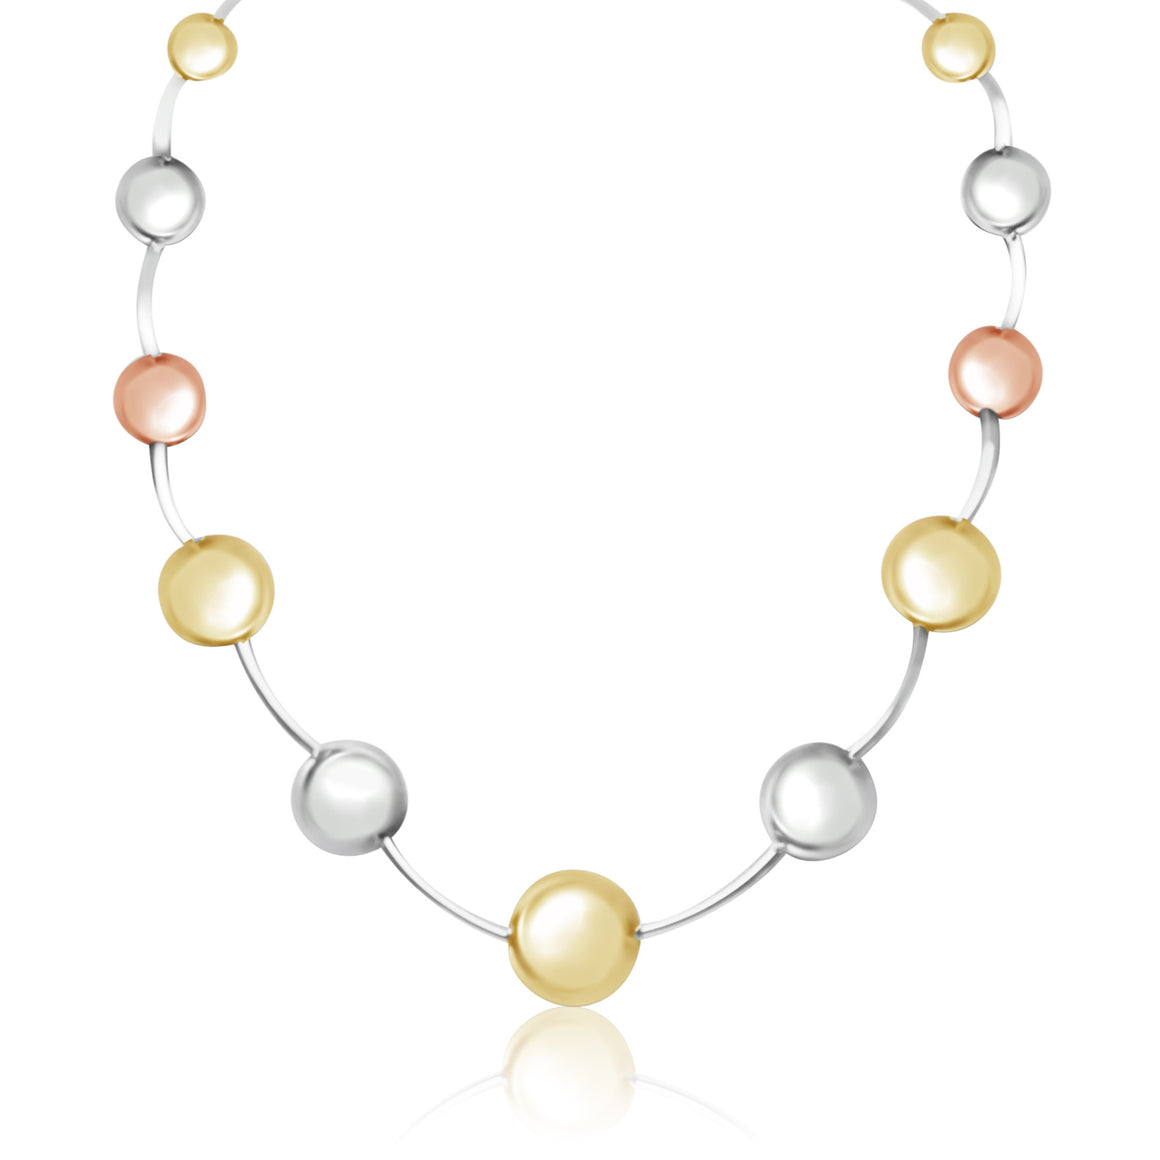 3-Tone Ball Necklace